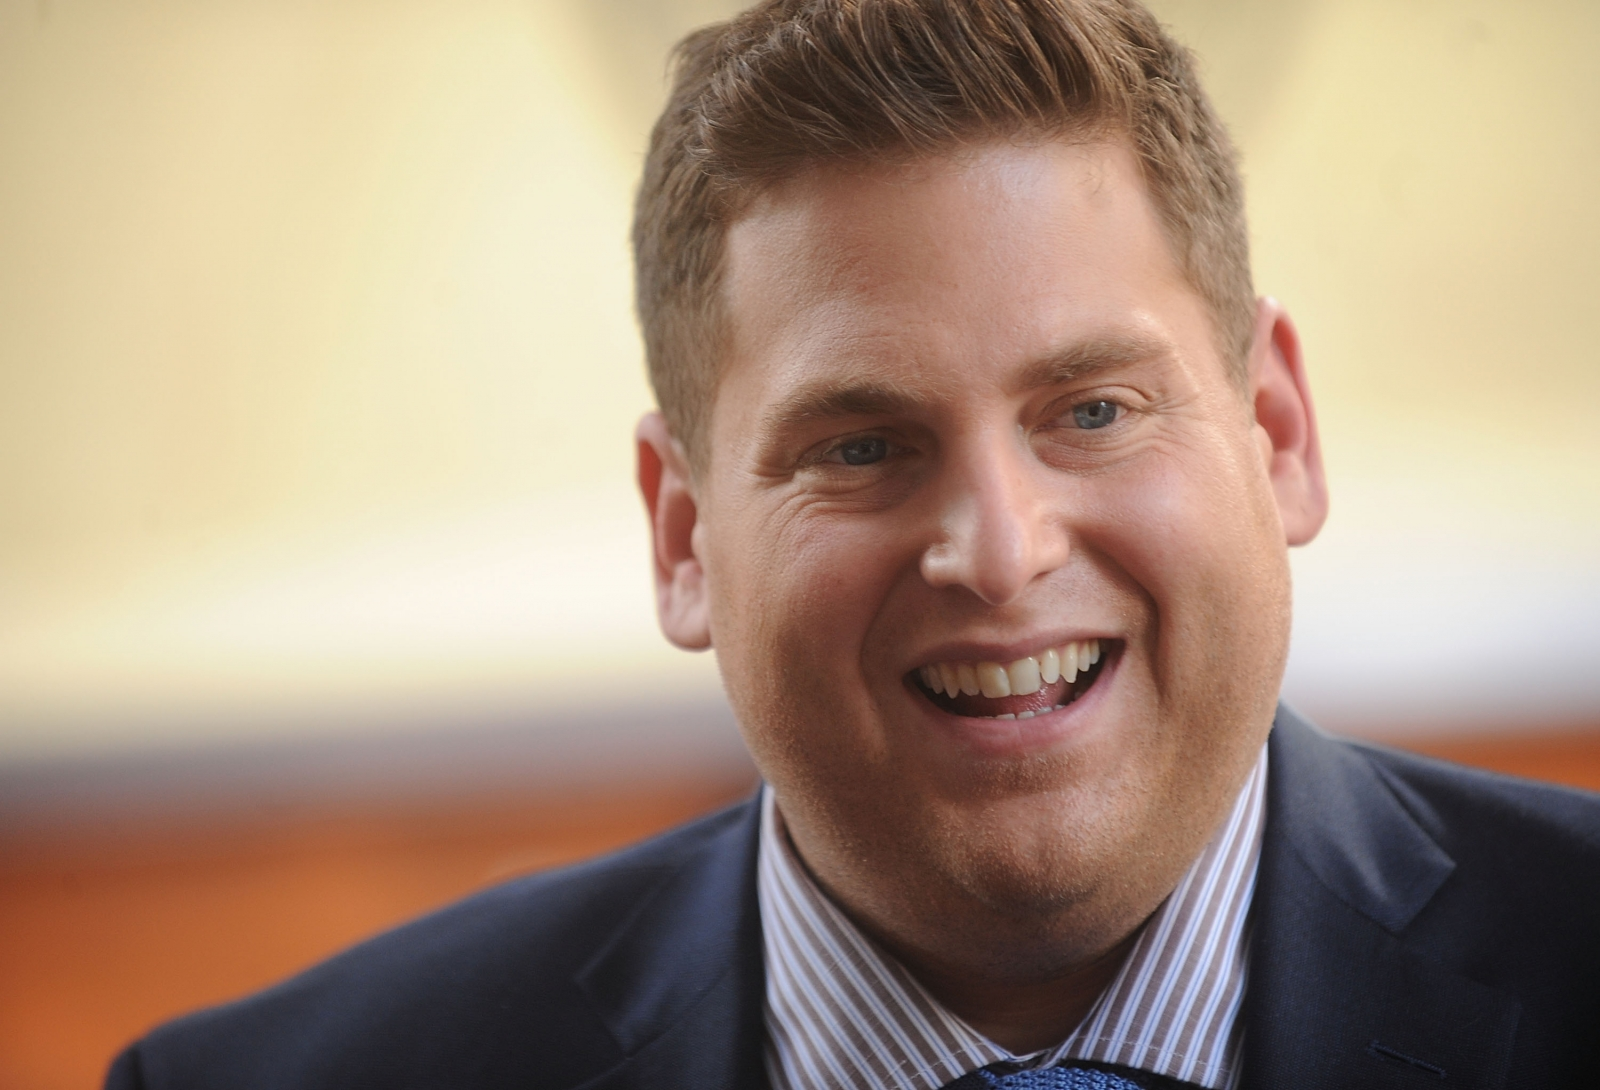 jonah hill cancels all interviews after french  ic mocks his sex life